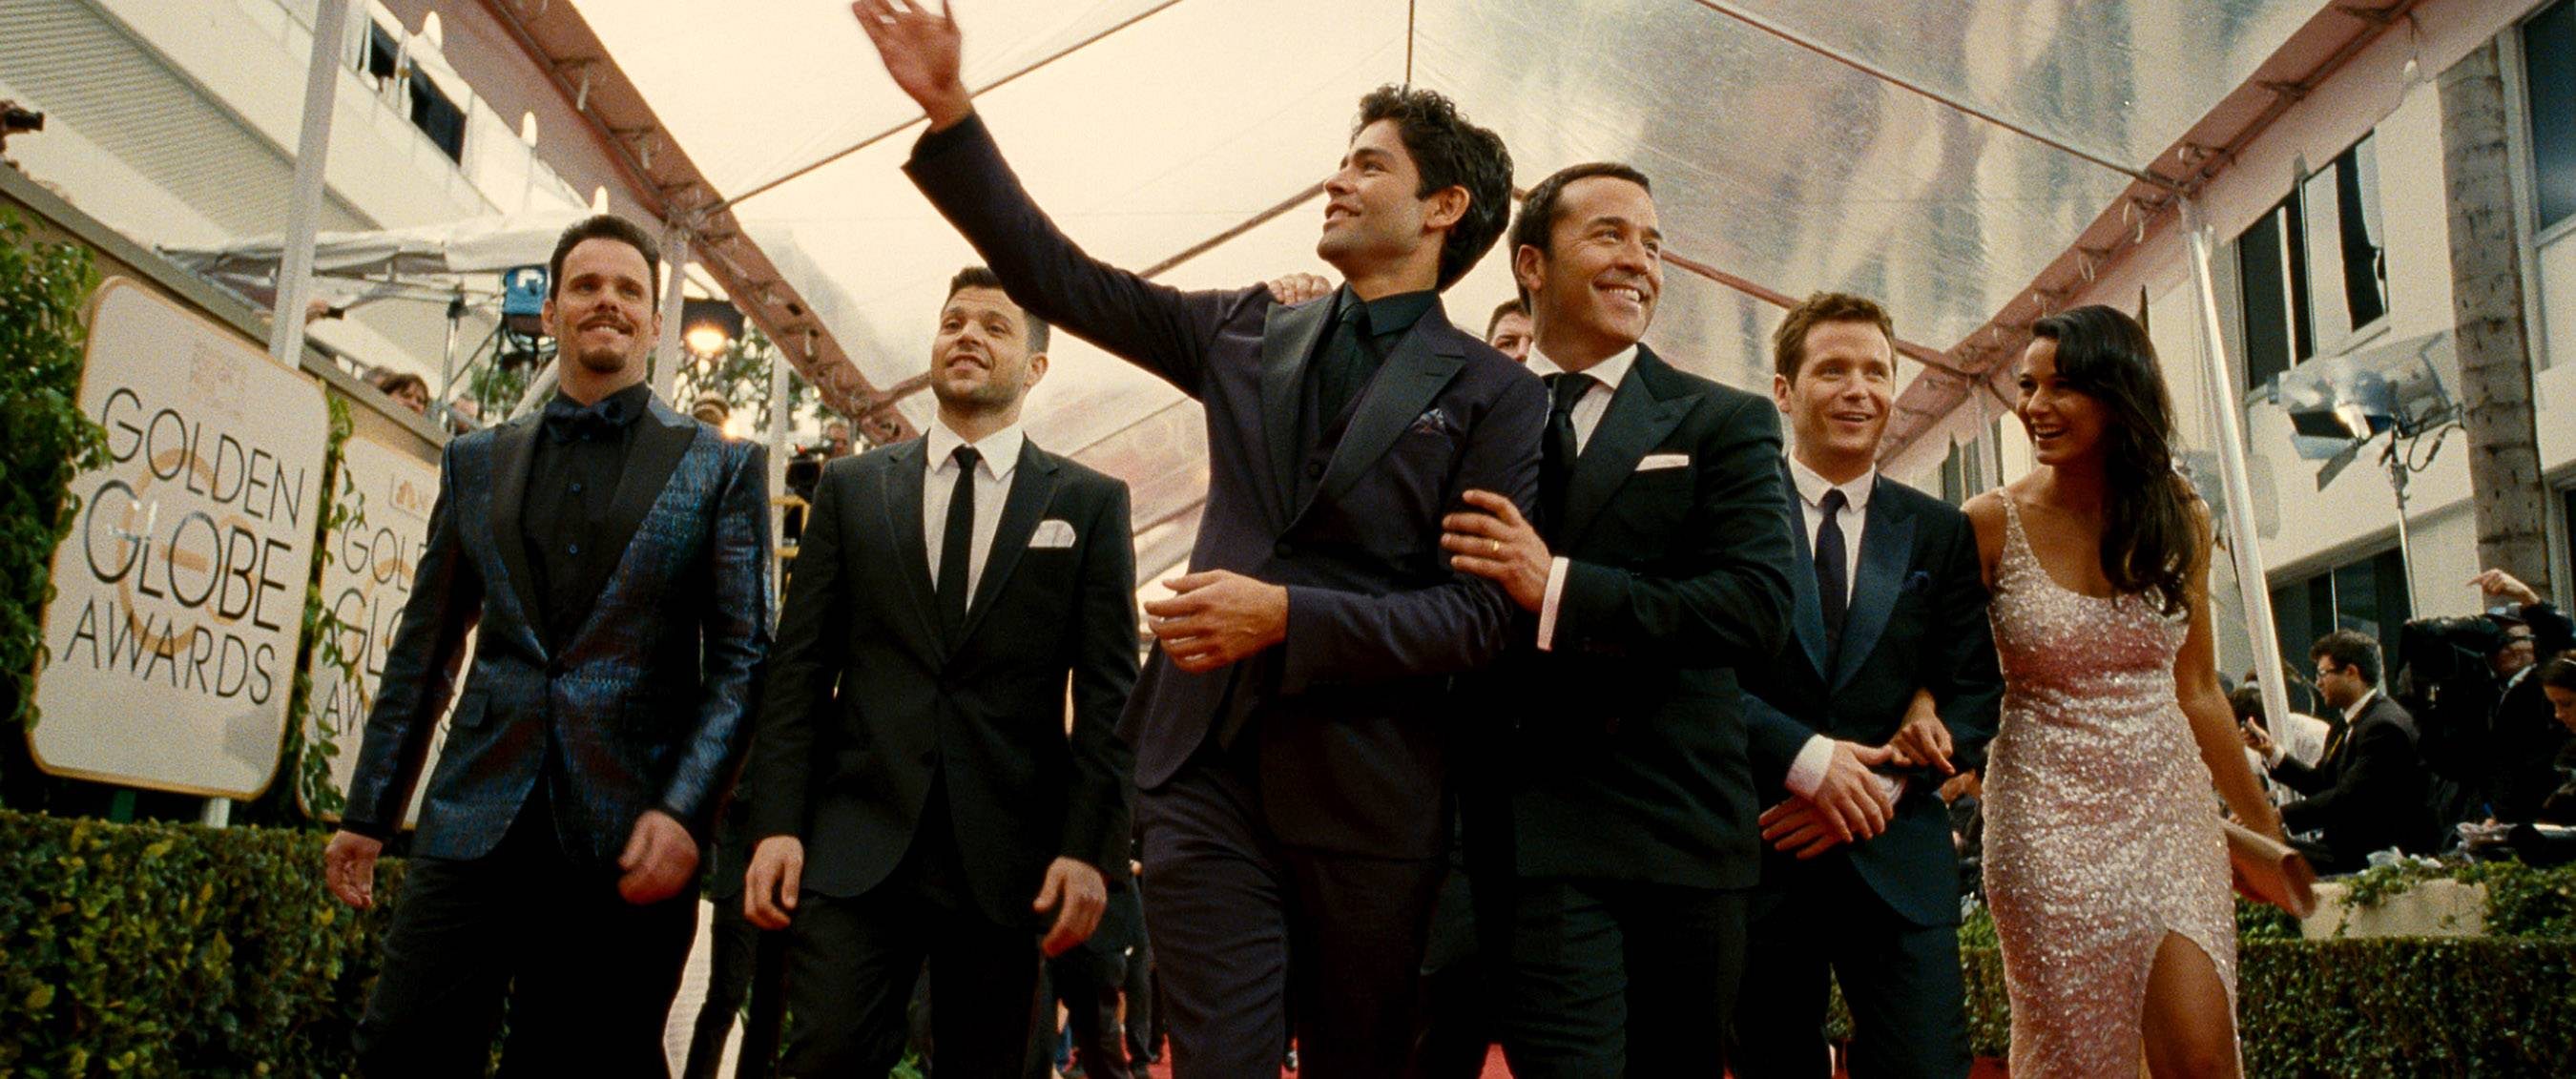 "Vince (Adrian Grenier, center) returns with his posse — Johnny (Kevin Dillon), Turtle (Jerry Ferrara), agent Ari Gold (Jeremy Piven), Eric (Kevin Connolly) and Sloan (Emmanuelle Chriqui) — for the film ""Entourage."""